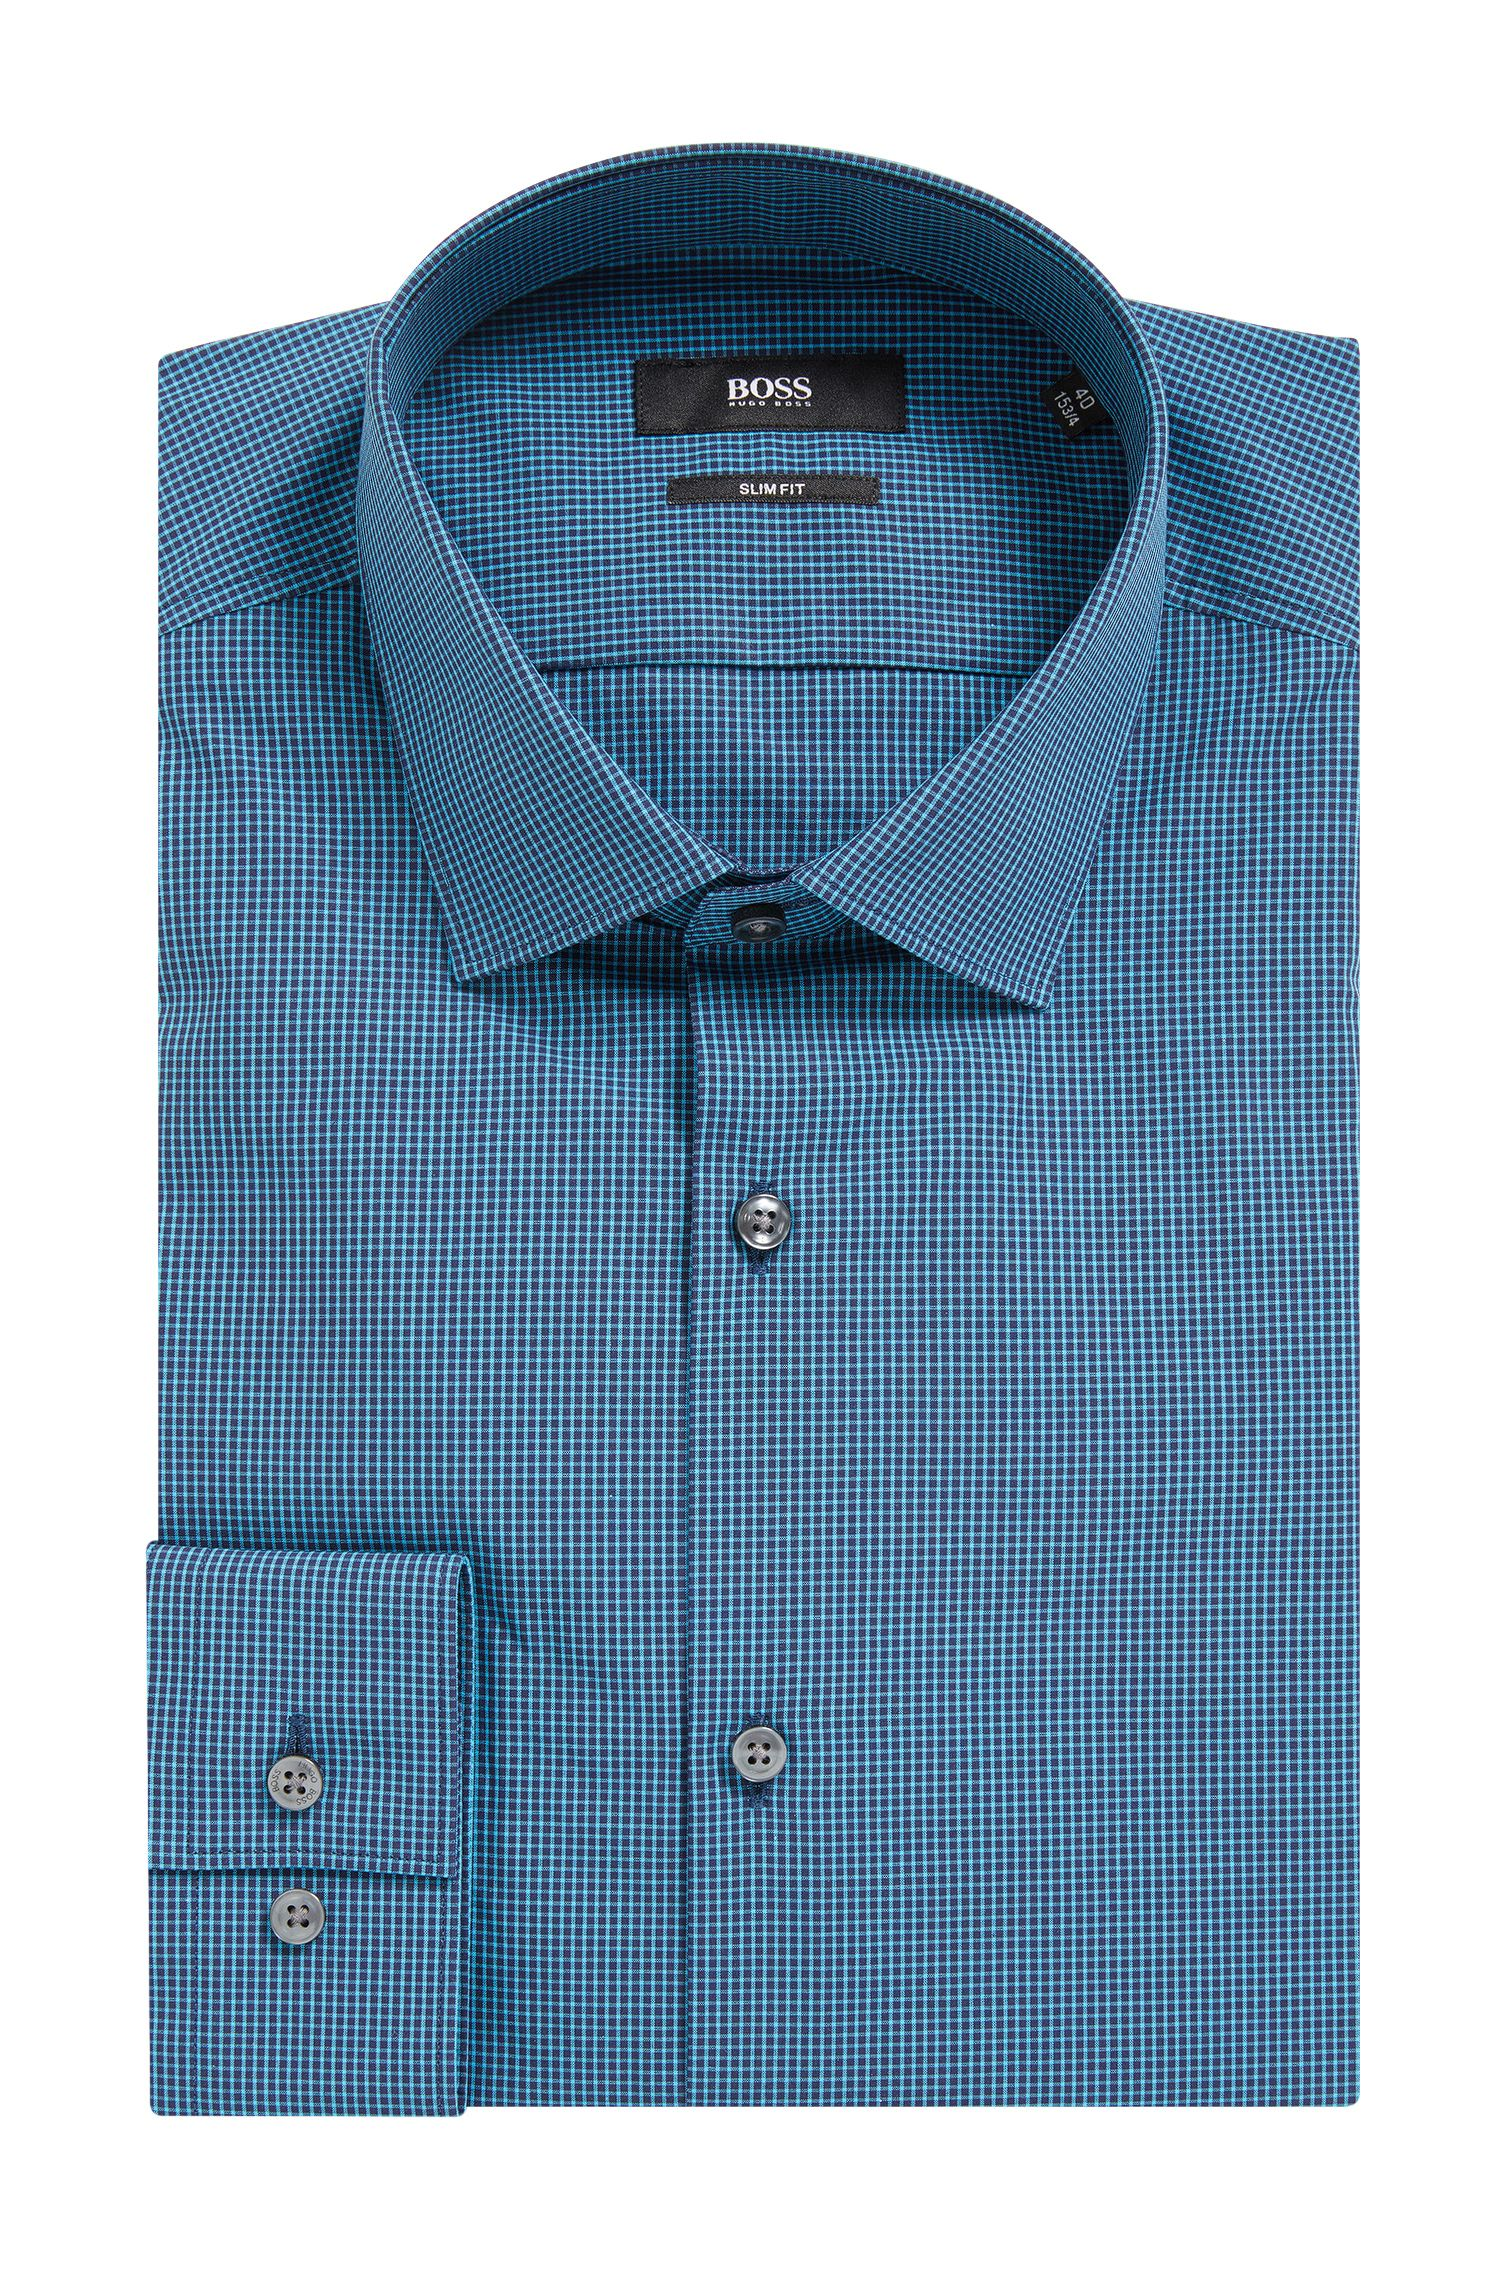 Micro Gingham Cotton Dress Shirt, Slim Fit | Ismo